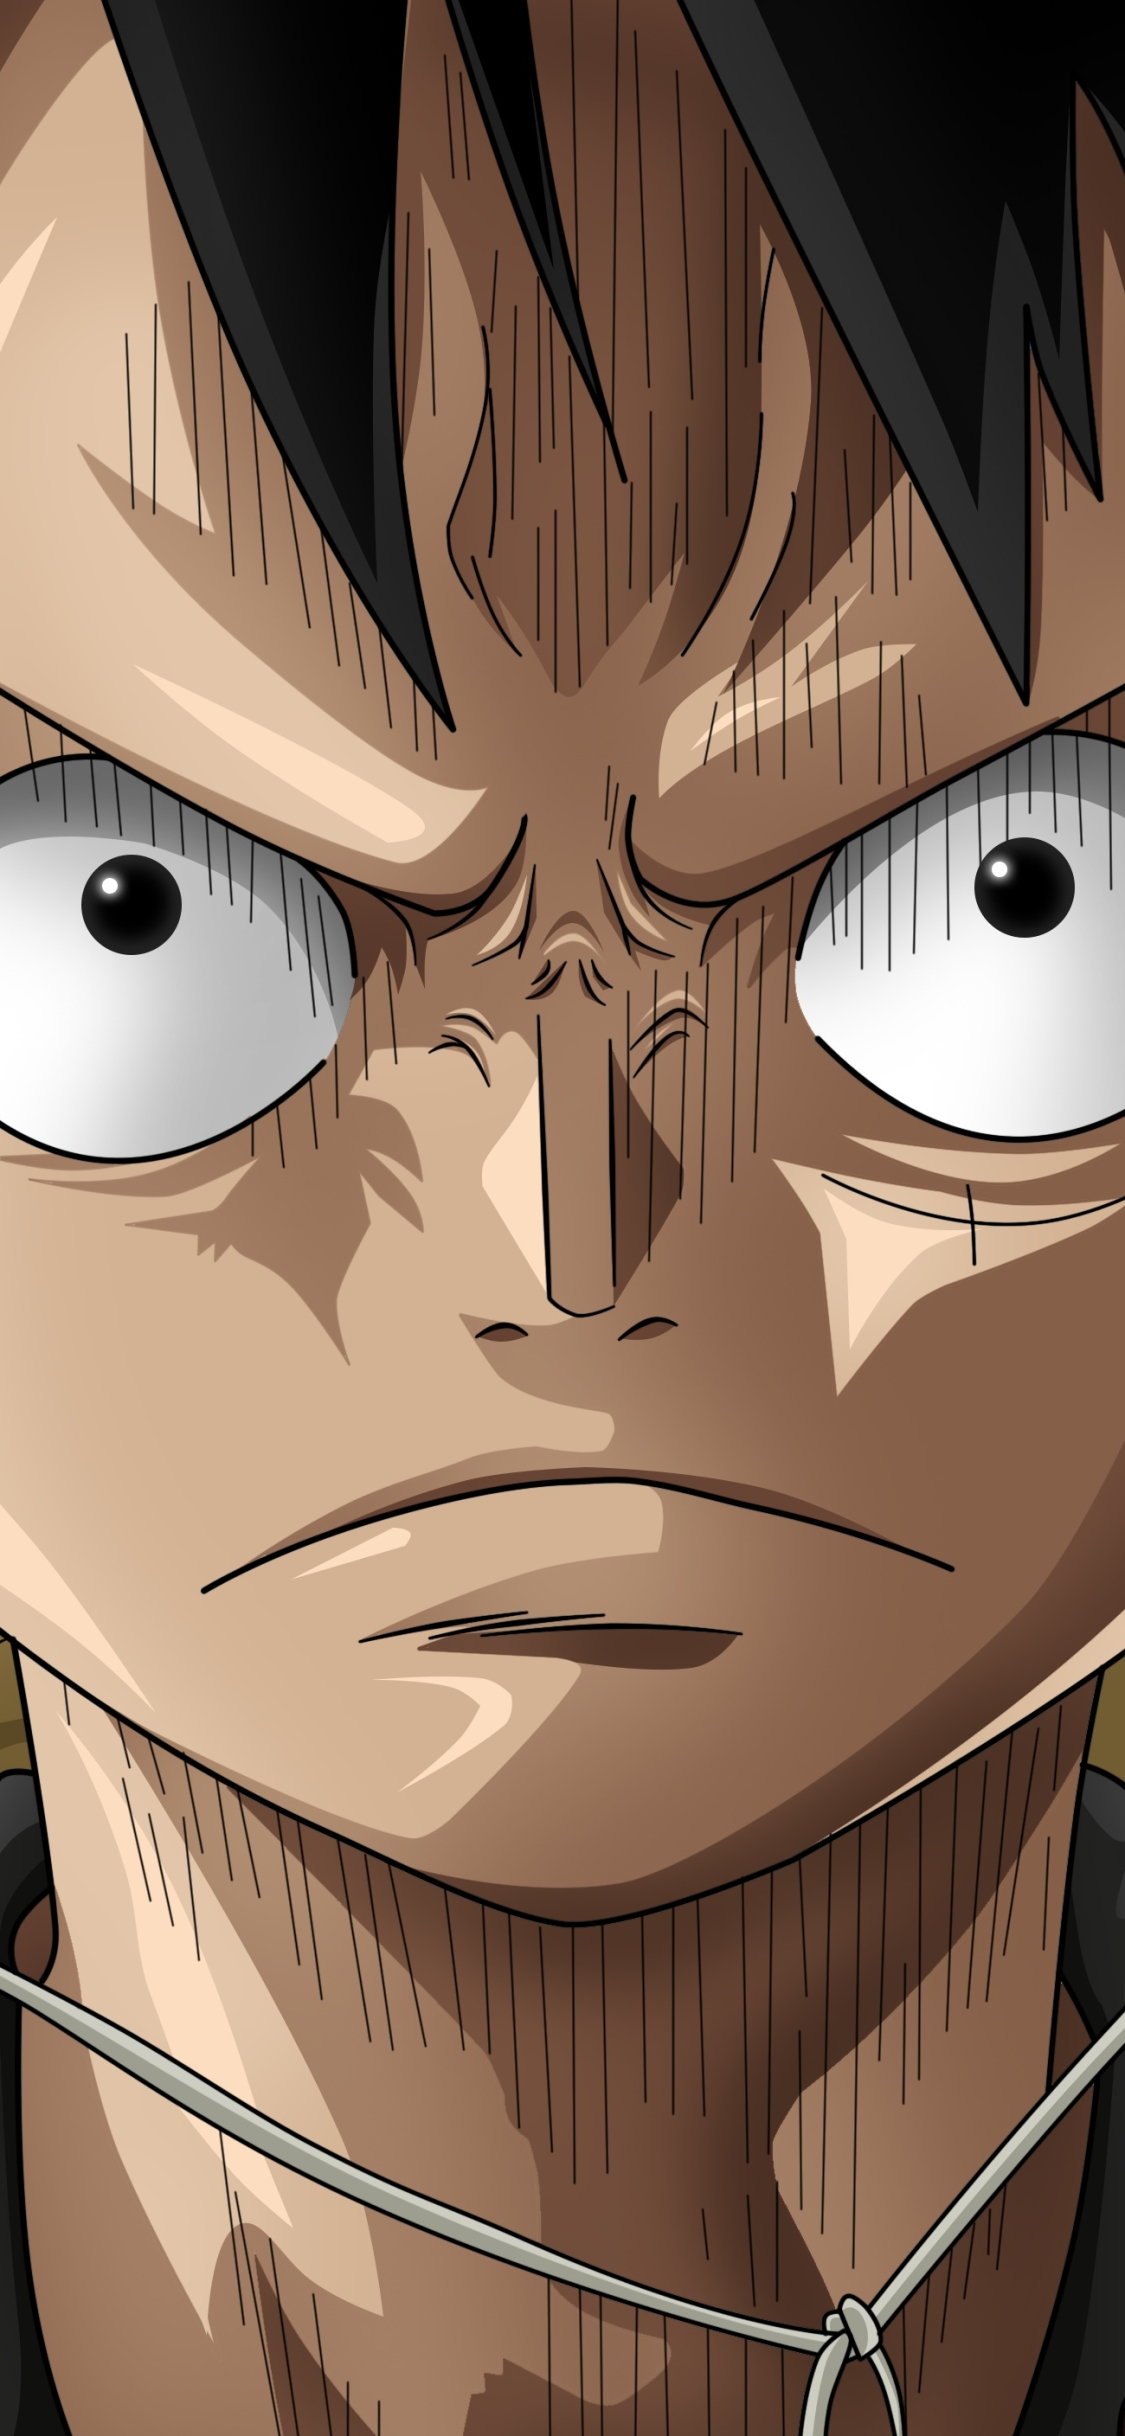 Anime One Piece 1125x2436 Wallpaper Id 855449 Mobile Abyss